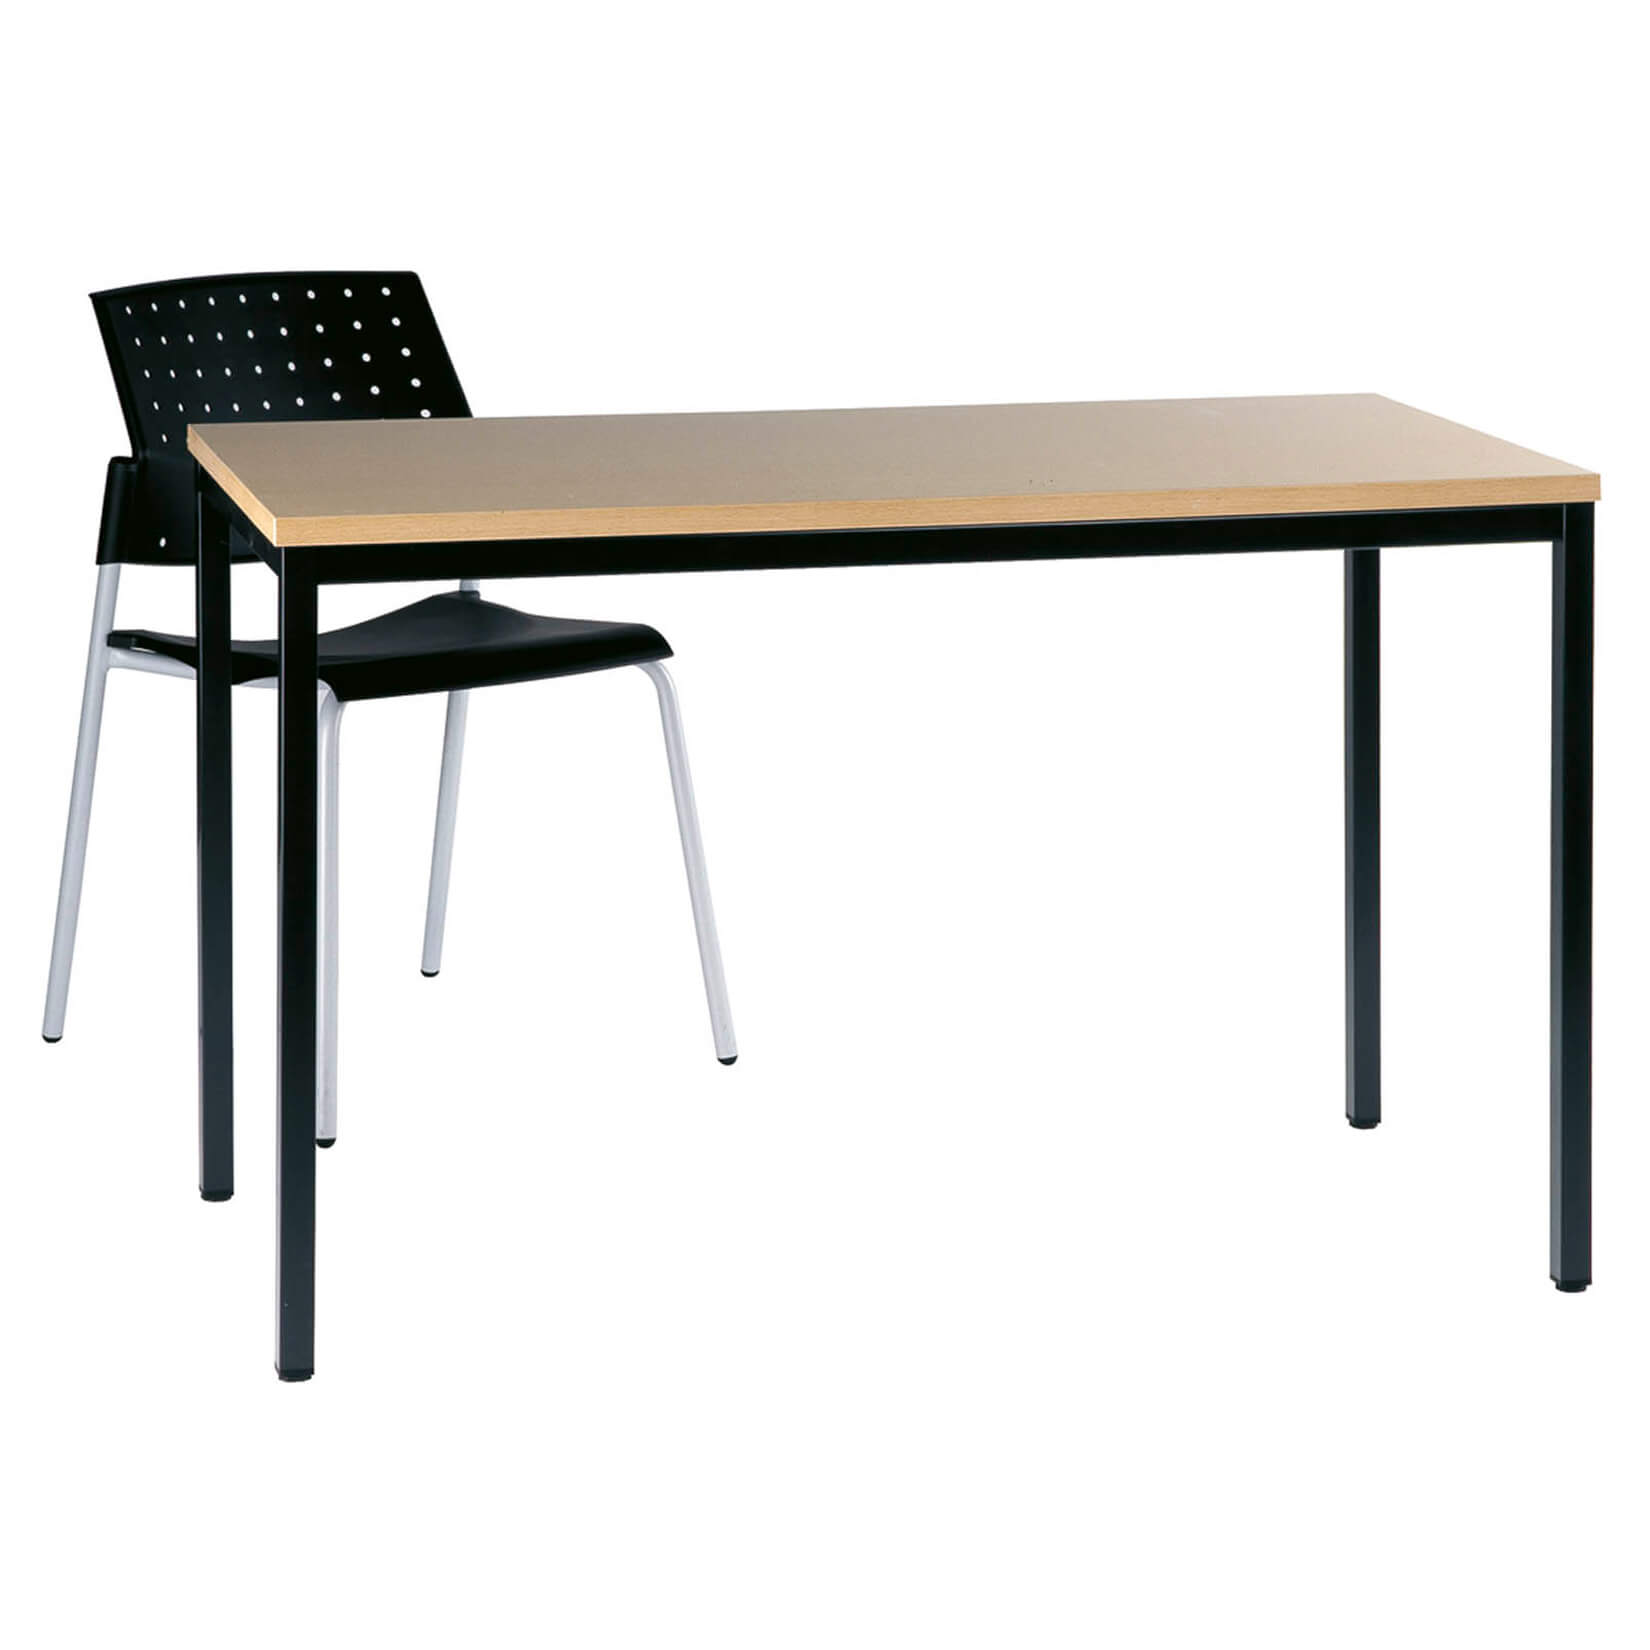 ARZON - Table fixe hêtre